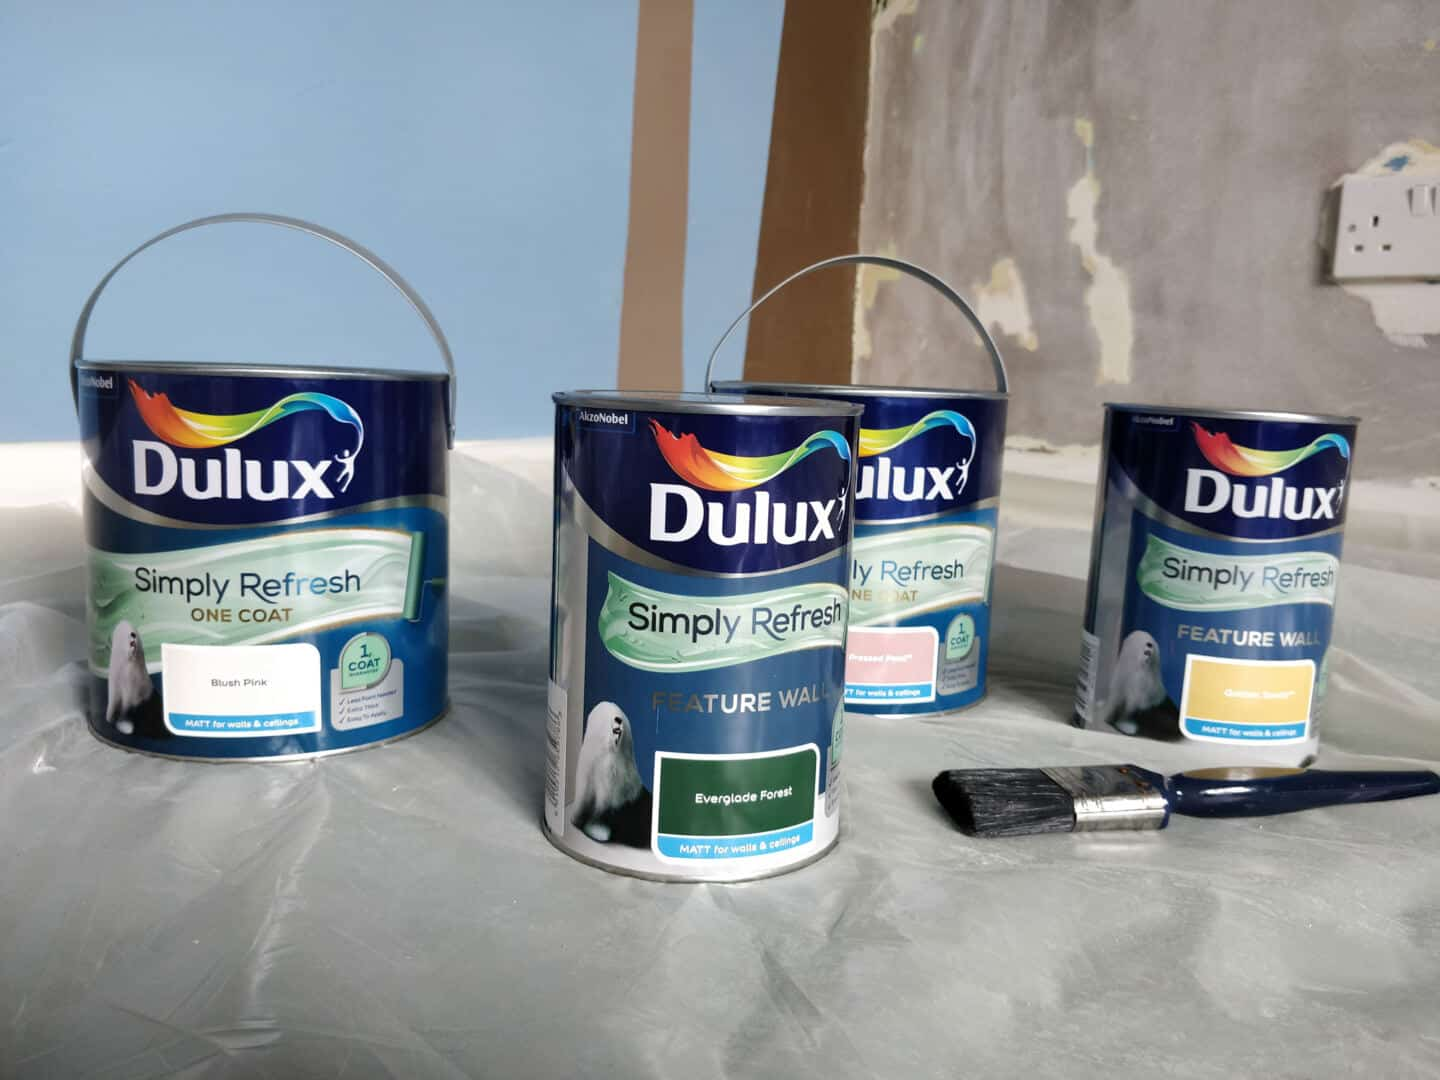 Dulux Simply Refresh paint cans on a plastic cover with a paintbrush. These colours will be used to create a DIY Painted Arch Accent Wall